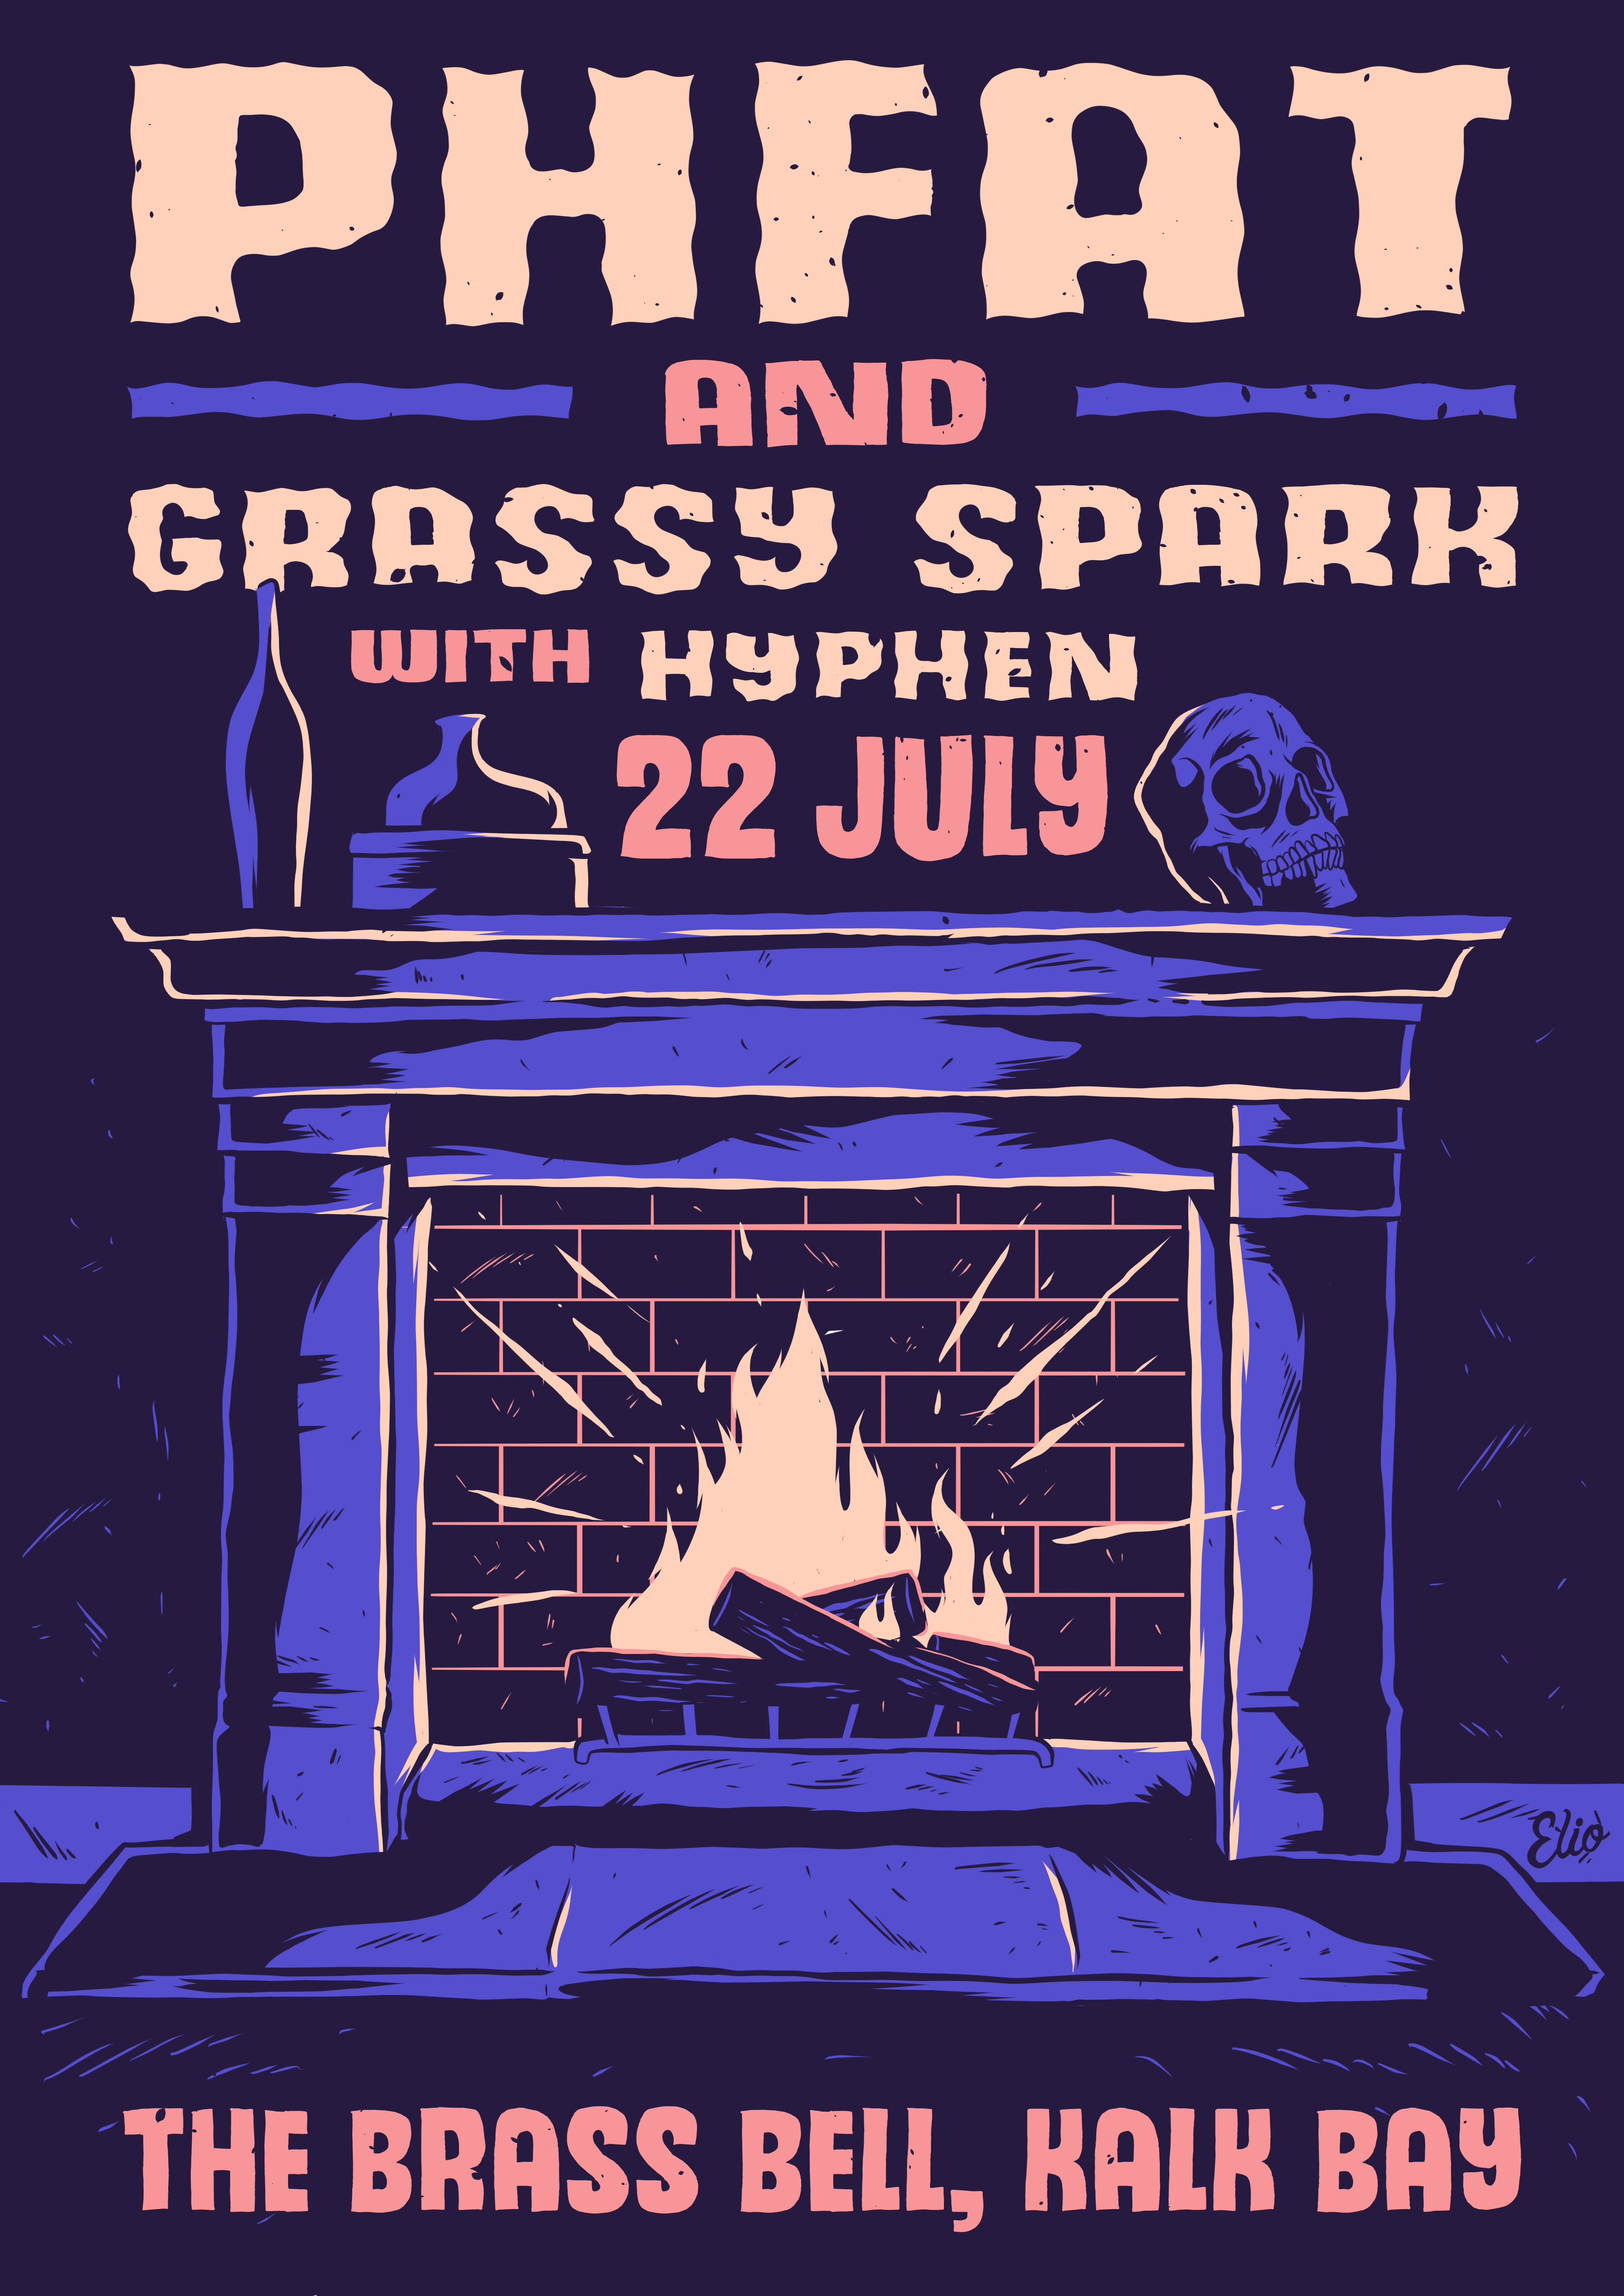 PHFAT & Grassy Spark Poster